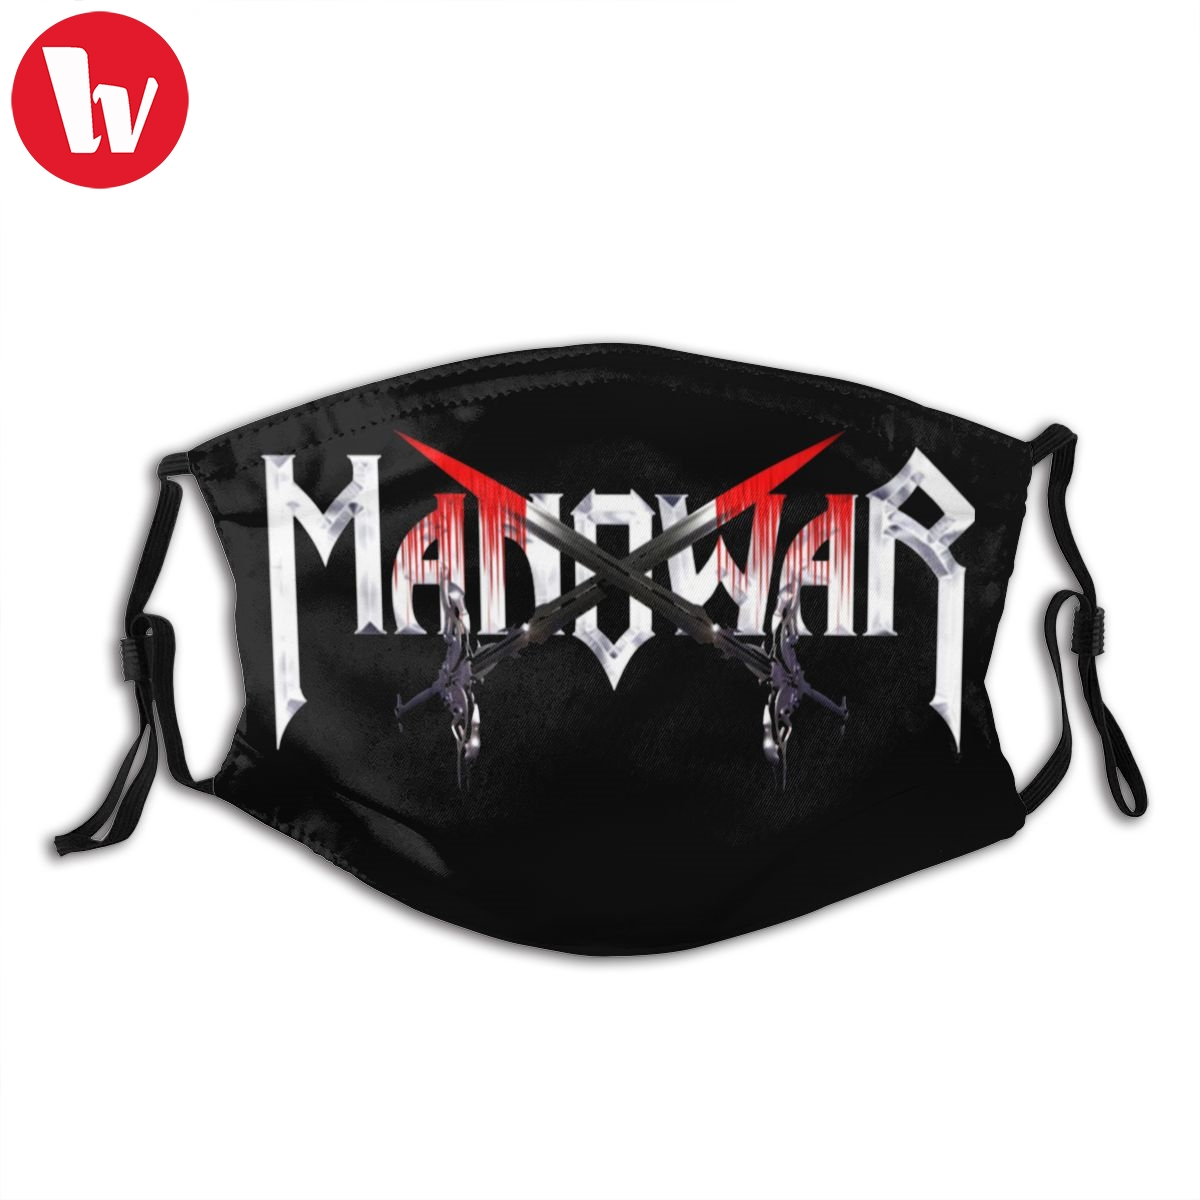 Maluma Mouth Face Mask Manowar Take Oh Take Those Lips Away Facial Mask Cool Fashion With 2 Filters For Adult